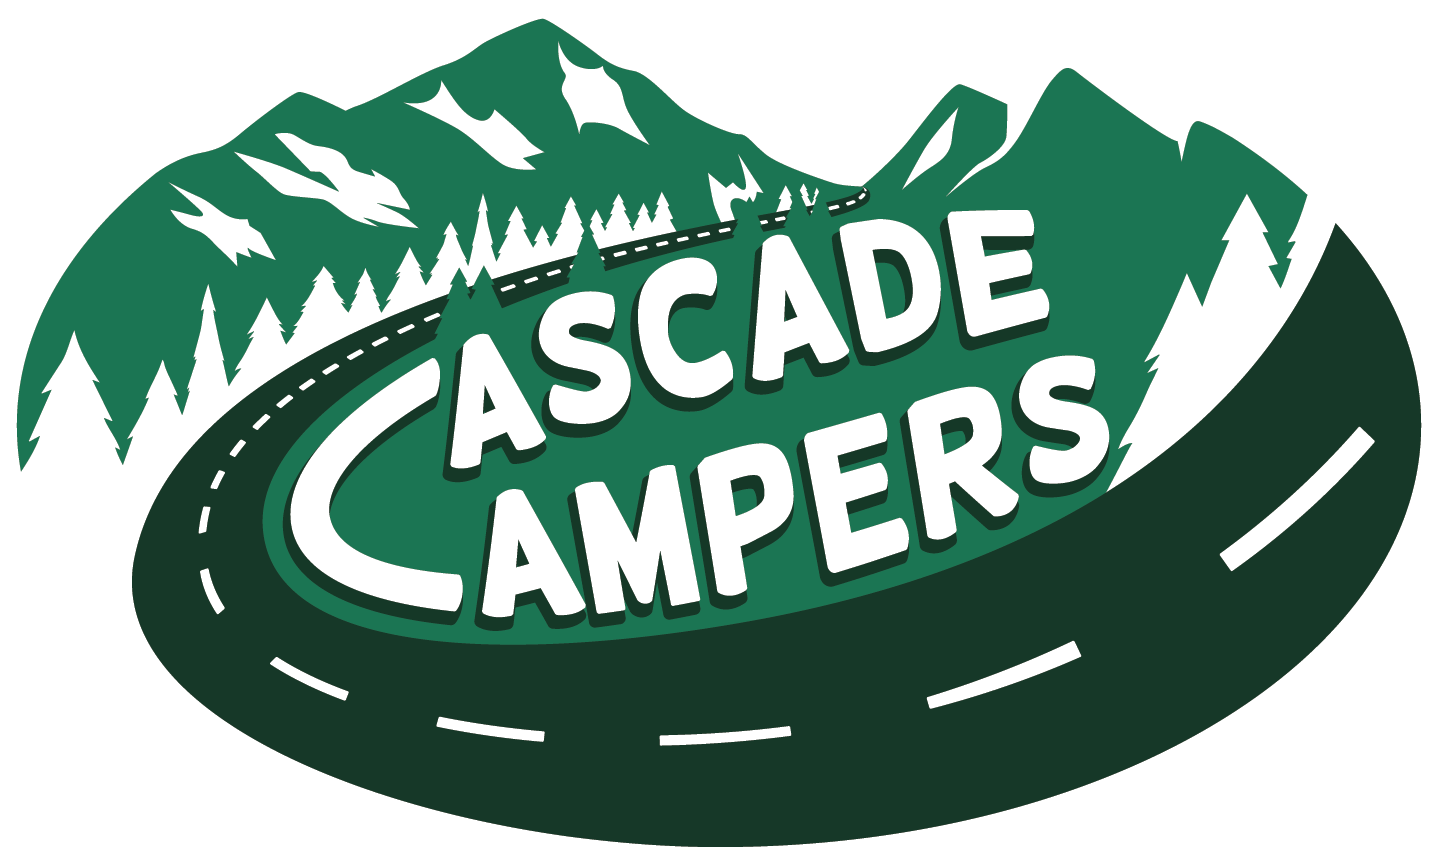 Cascade Campers